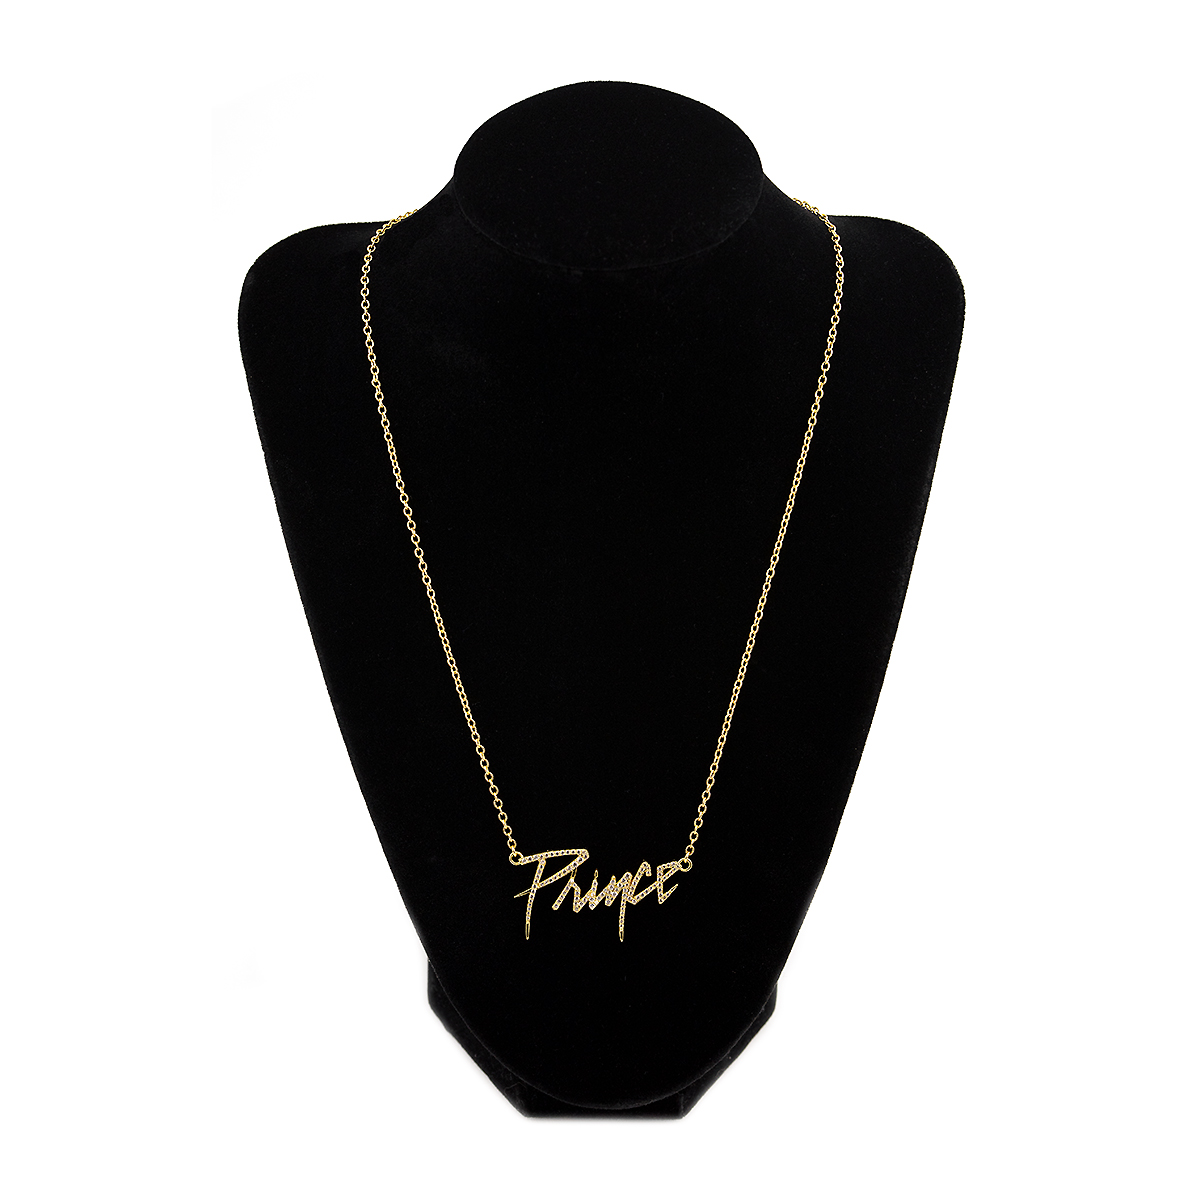 Prince Logo Necklace [Gold] with Crystal Embellishment